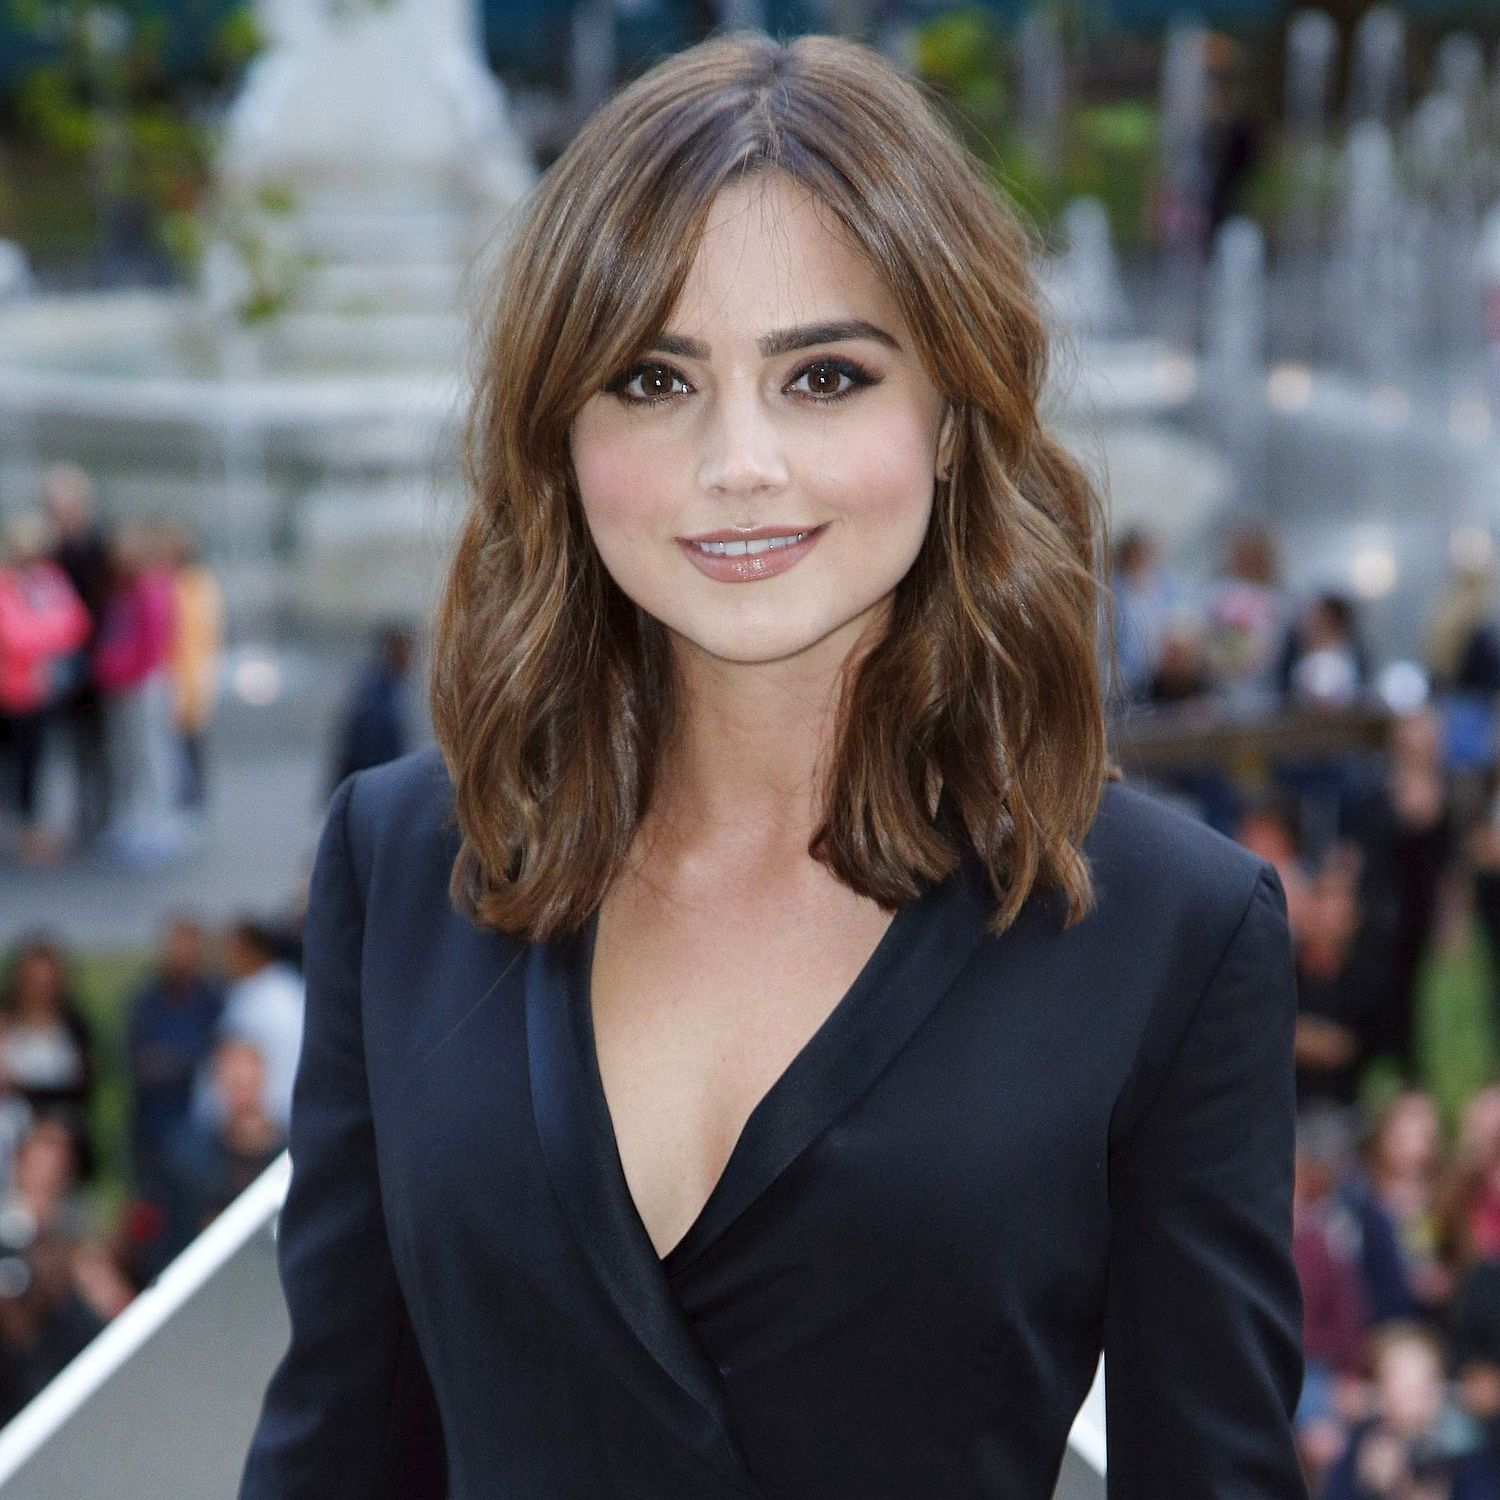 Jenna Coleman Wallpapers Celebrity Hq Jenna Coleman Pictures